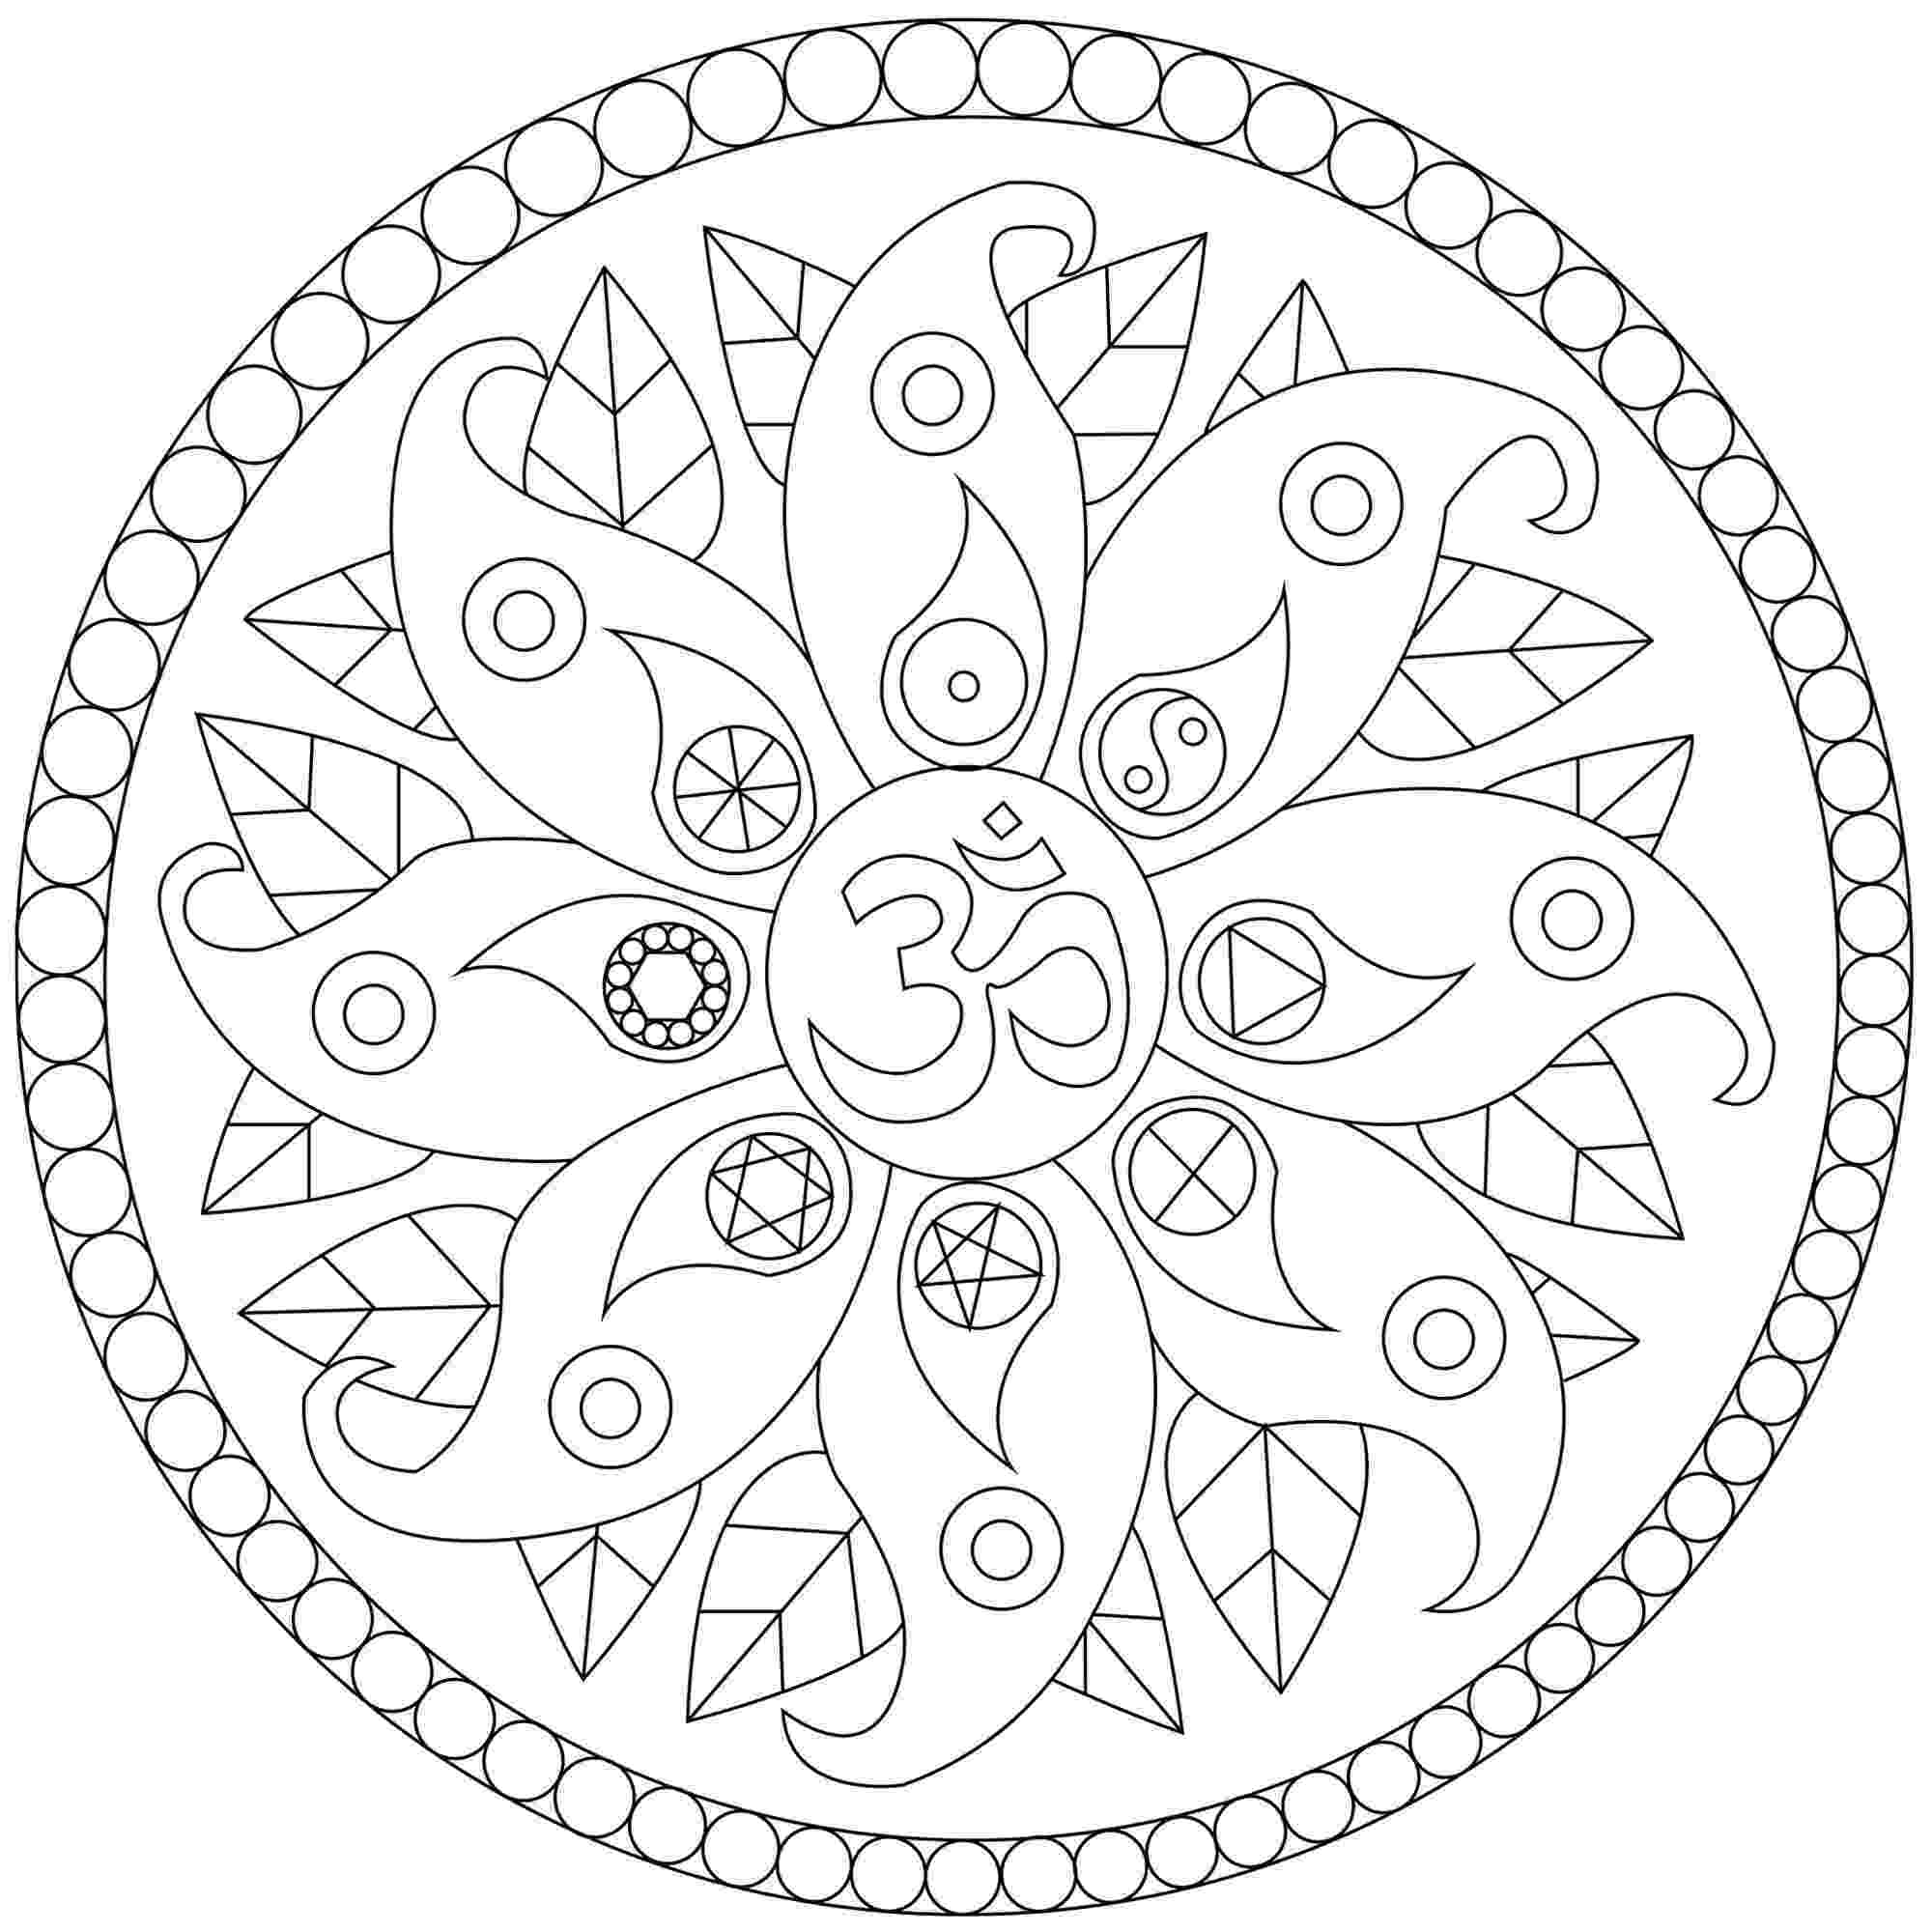 simple mandalas to color simple mandala 3 malas coloring pages for kids to print mandalas to color simple